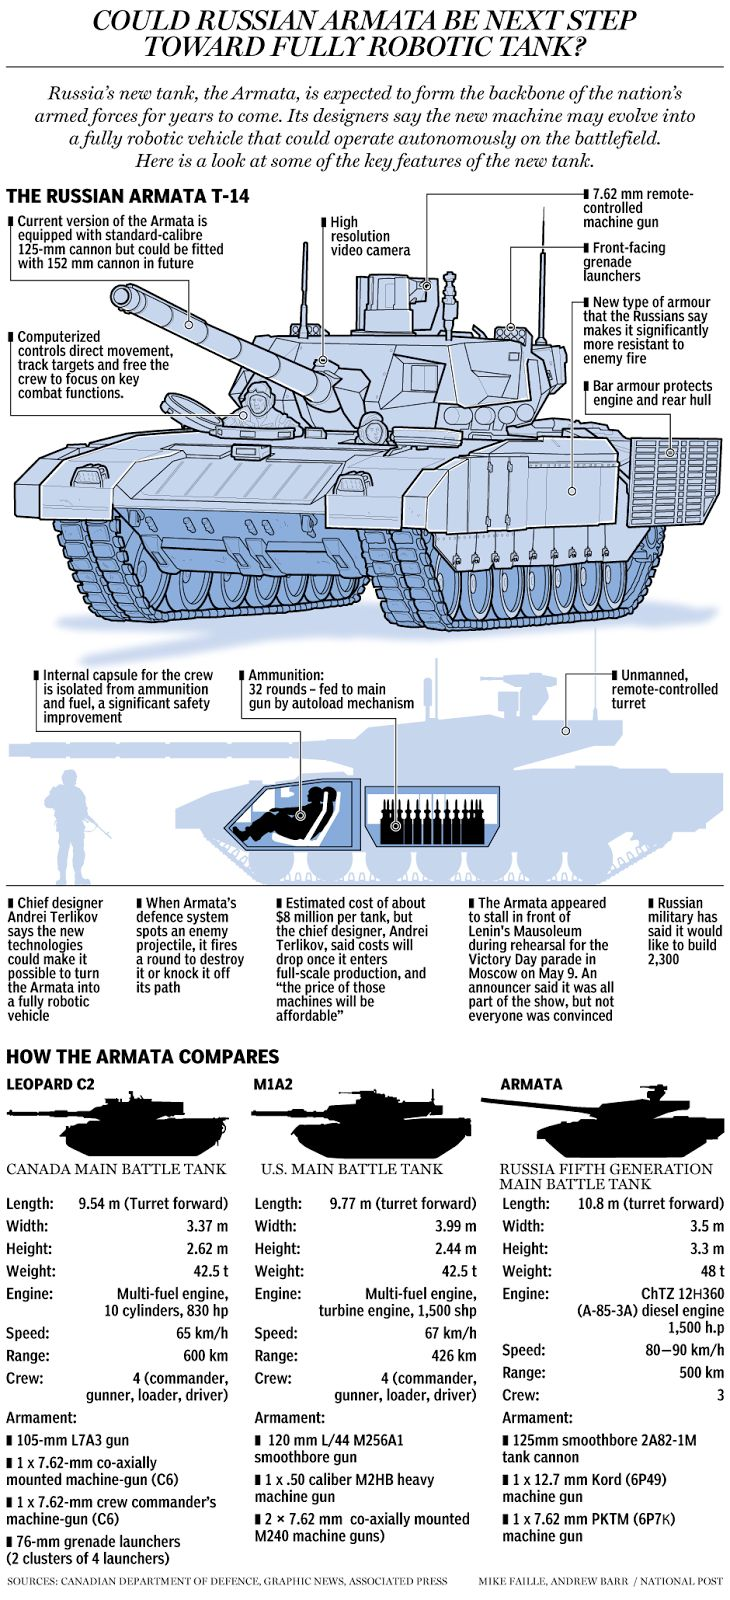 Next Big Future: Russia's Armata spurring a revival in main battle tanks